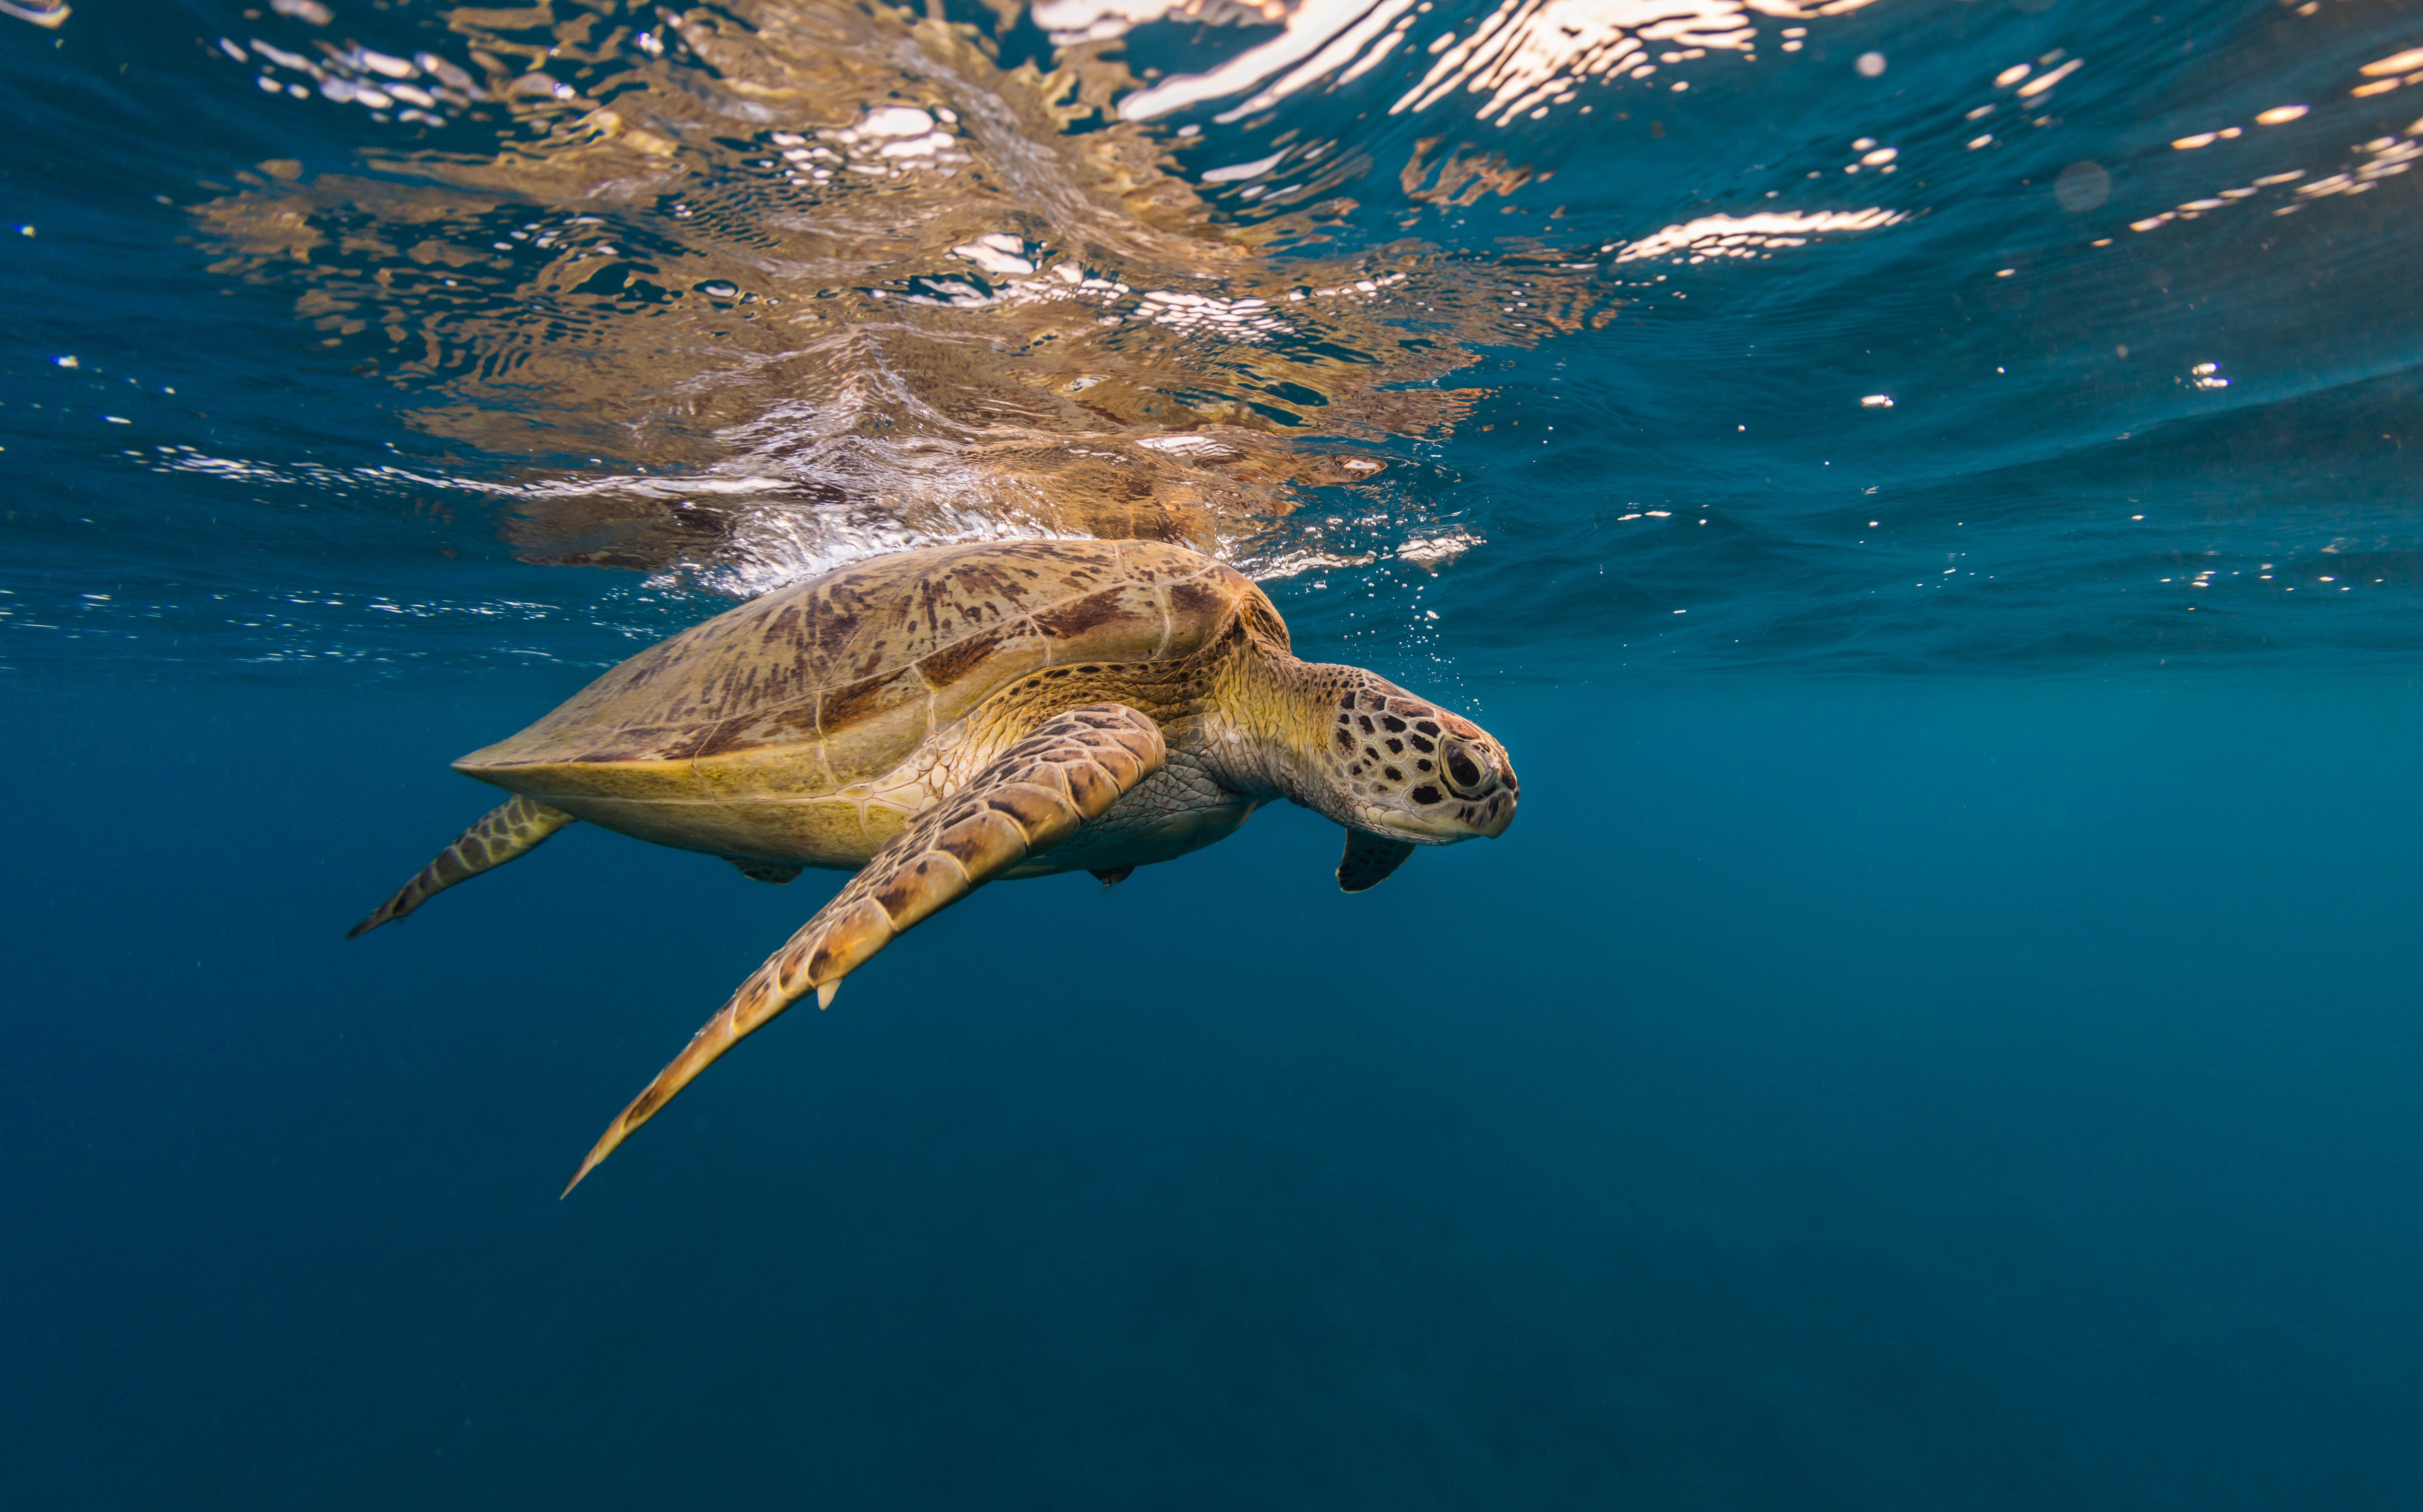 Hawksbill turtle trying to breath